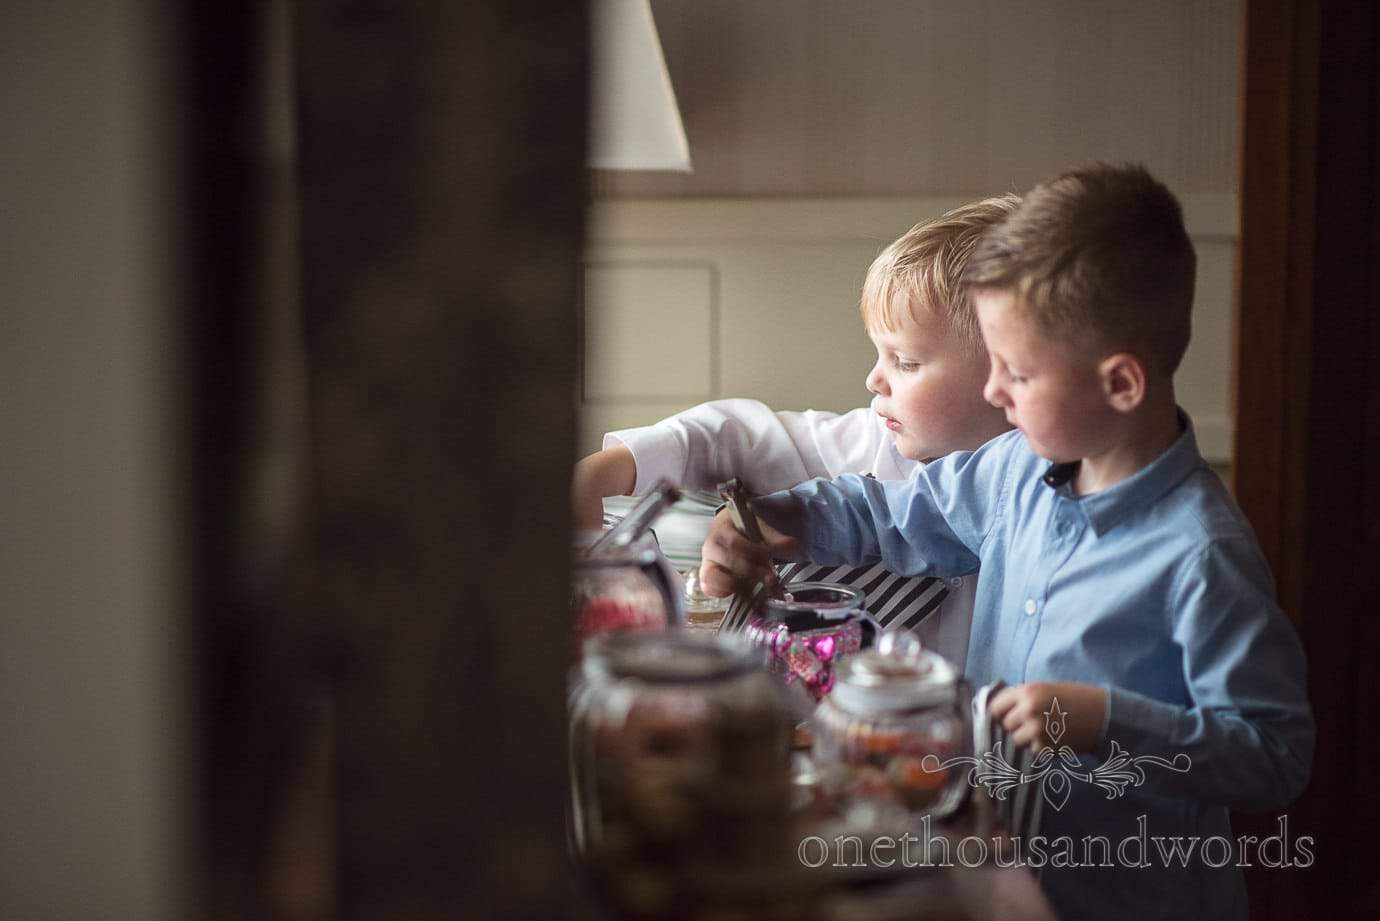 Child wedding guests help themselves to wedding pick and mix sweets in jars